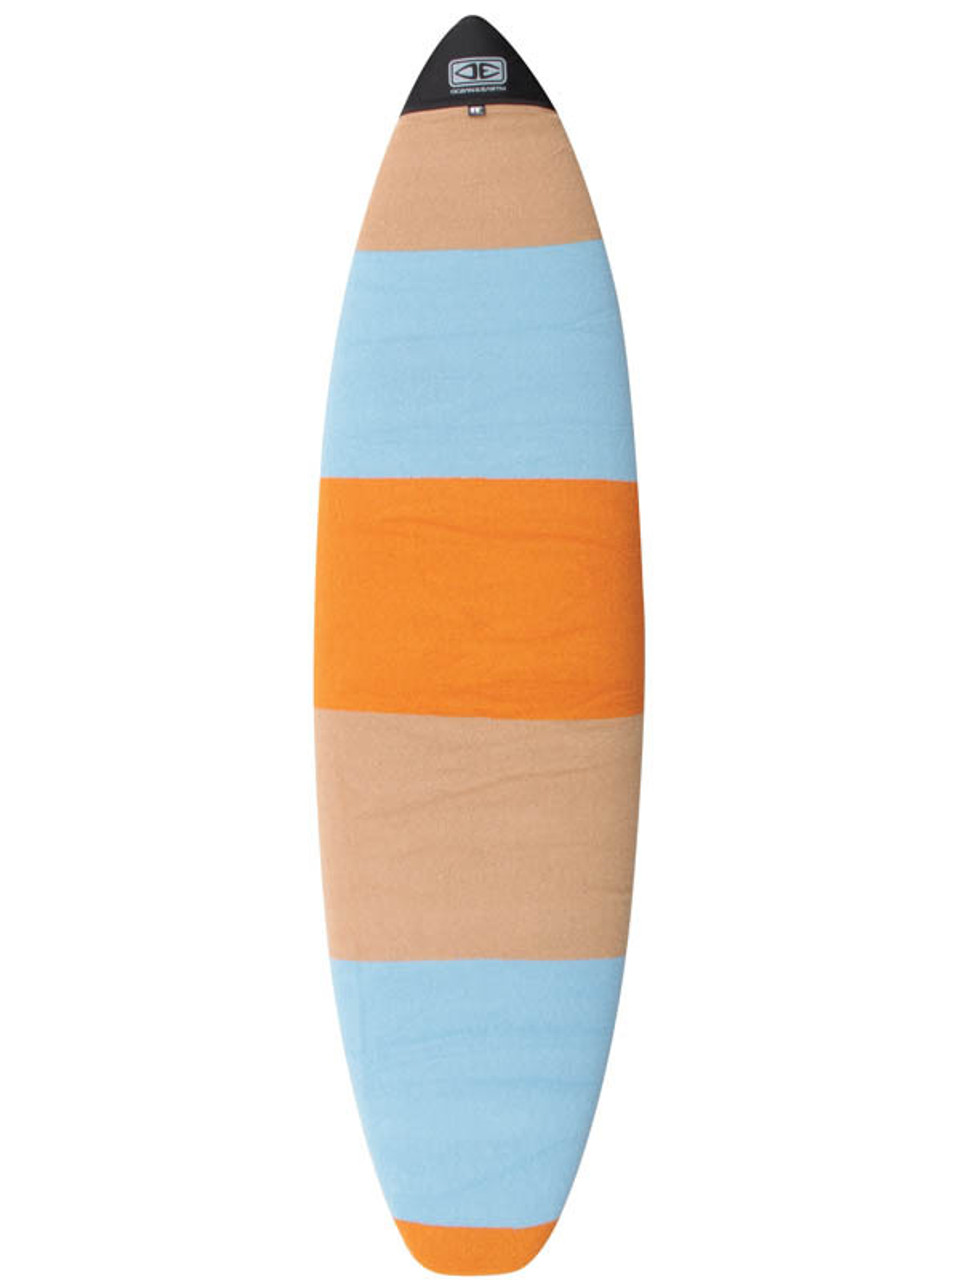 Fish And Funshape Surfboard Sock Covers 5 8 Quot To 7 6